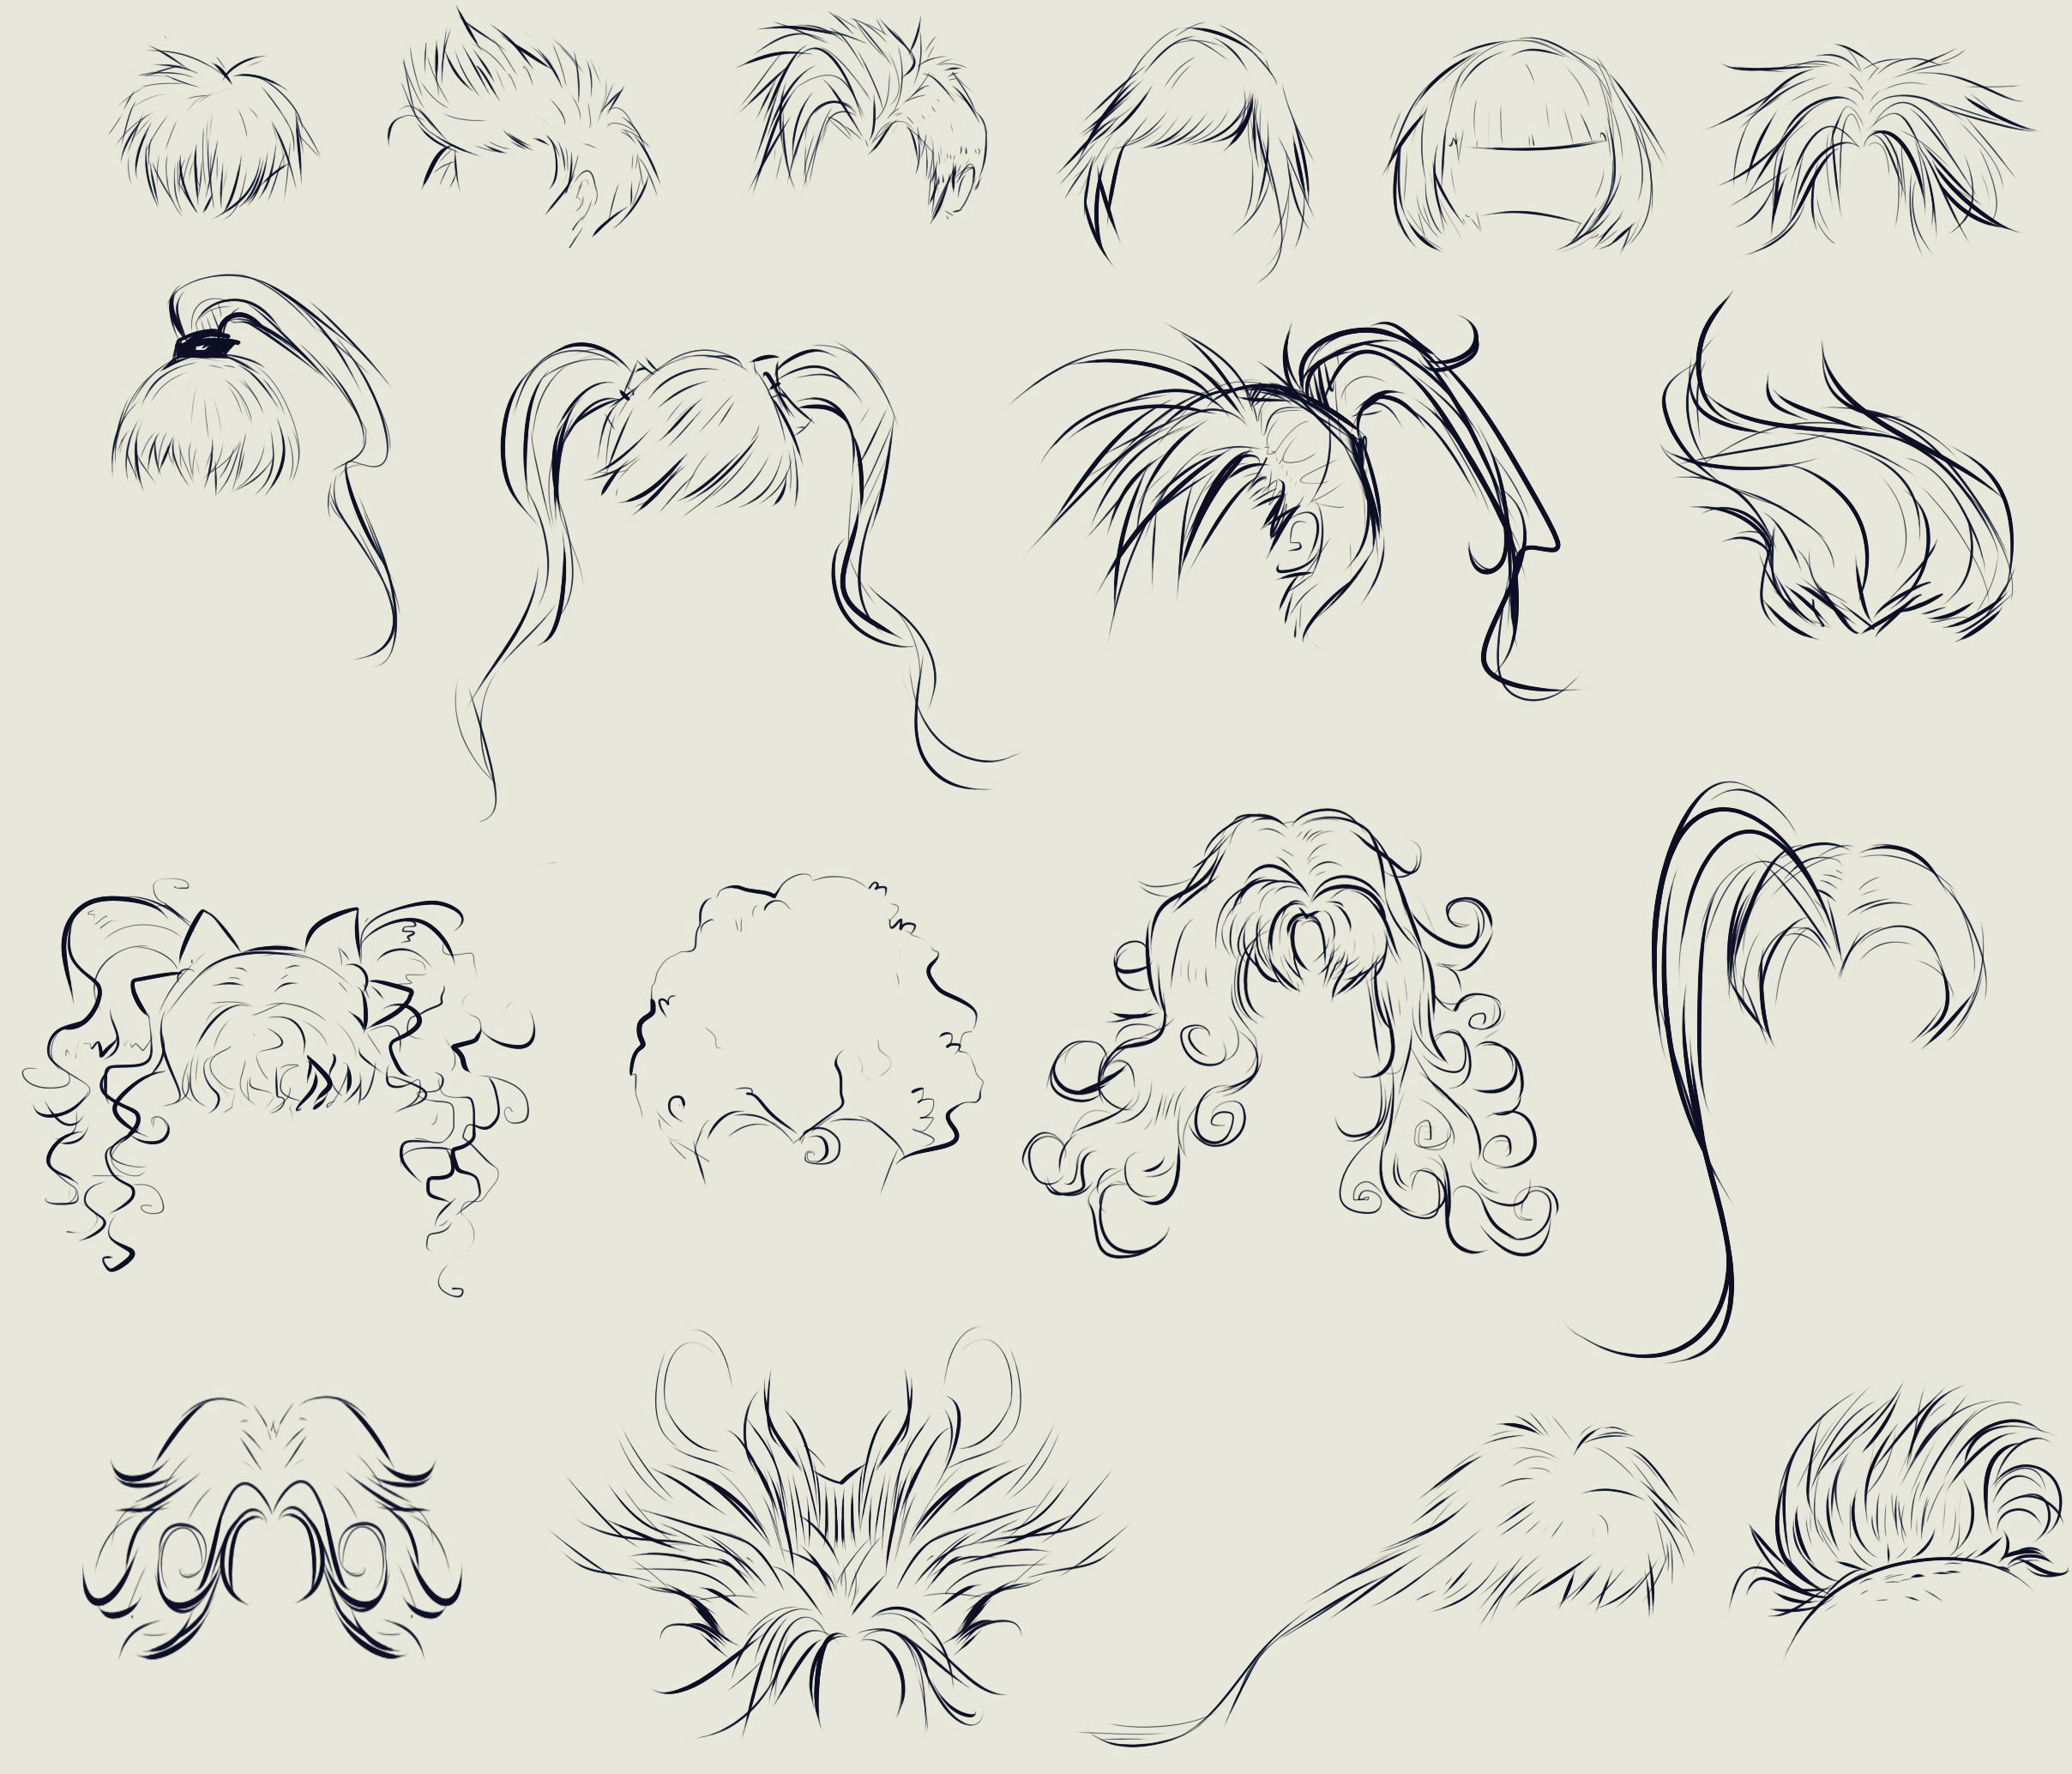 this anime hair reference sheet by ryky is all you need to get those flowy locks